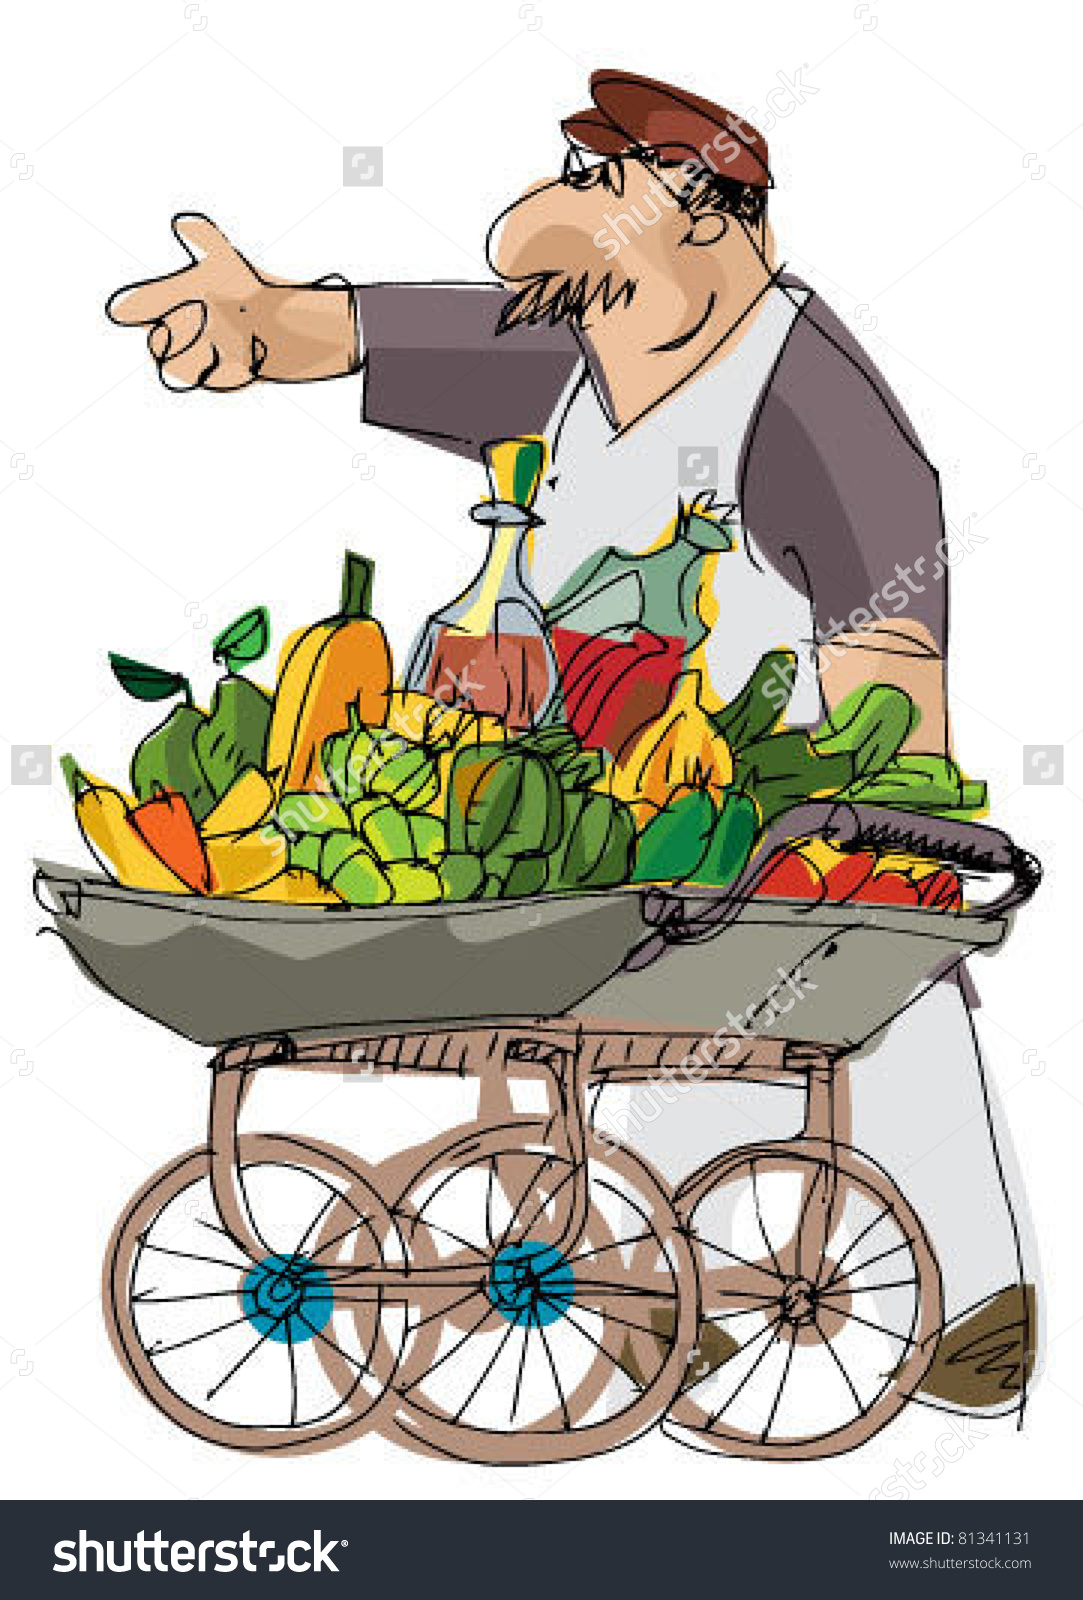 Street hawker clipart - Clipground